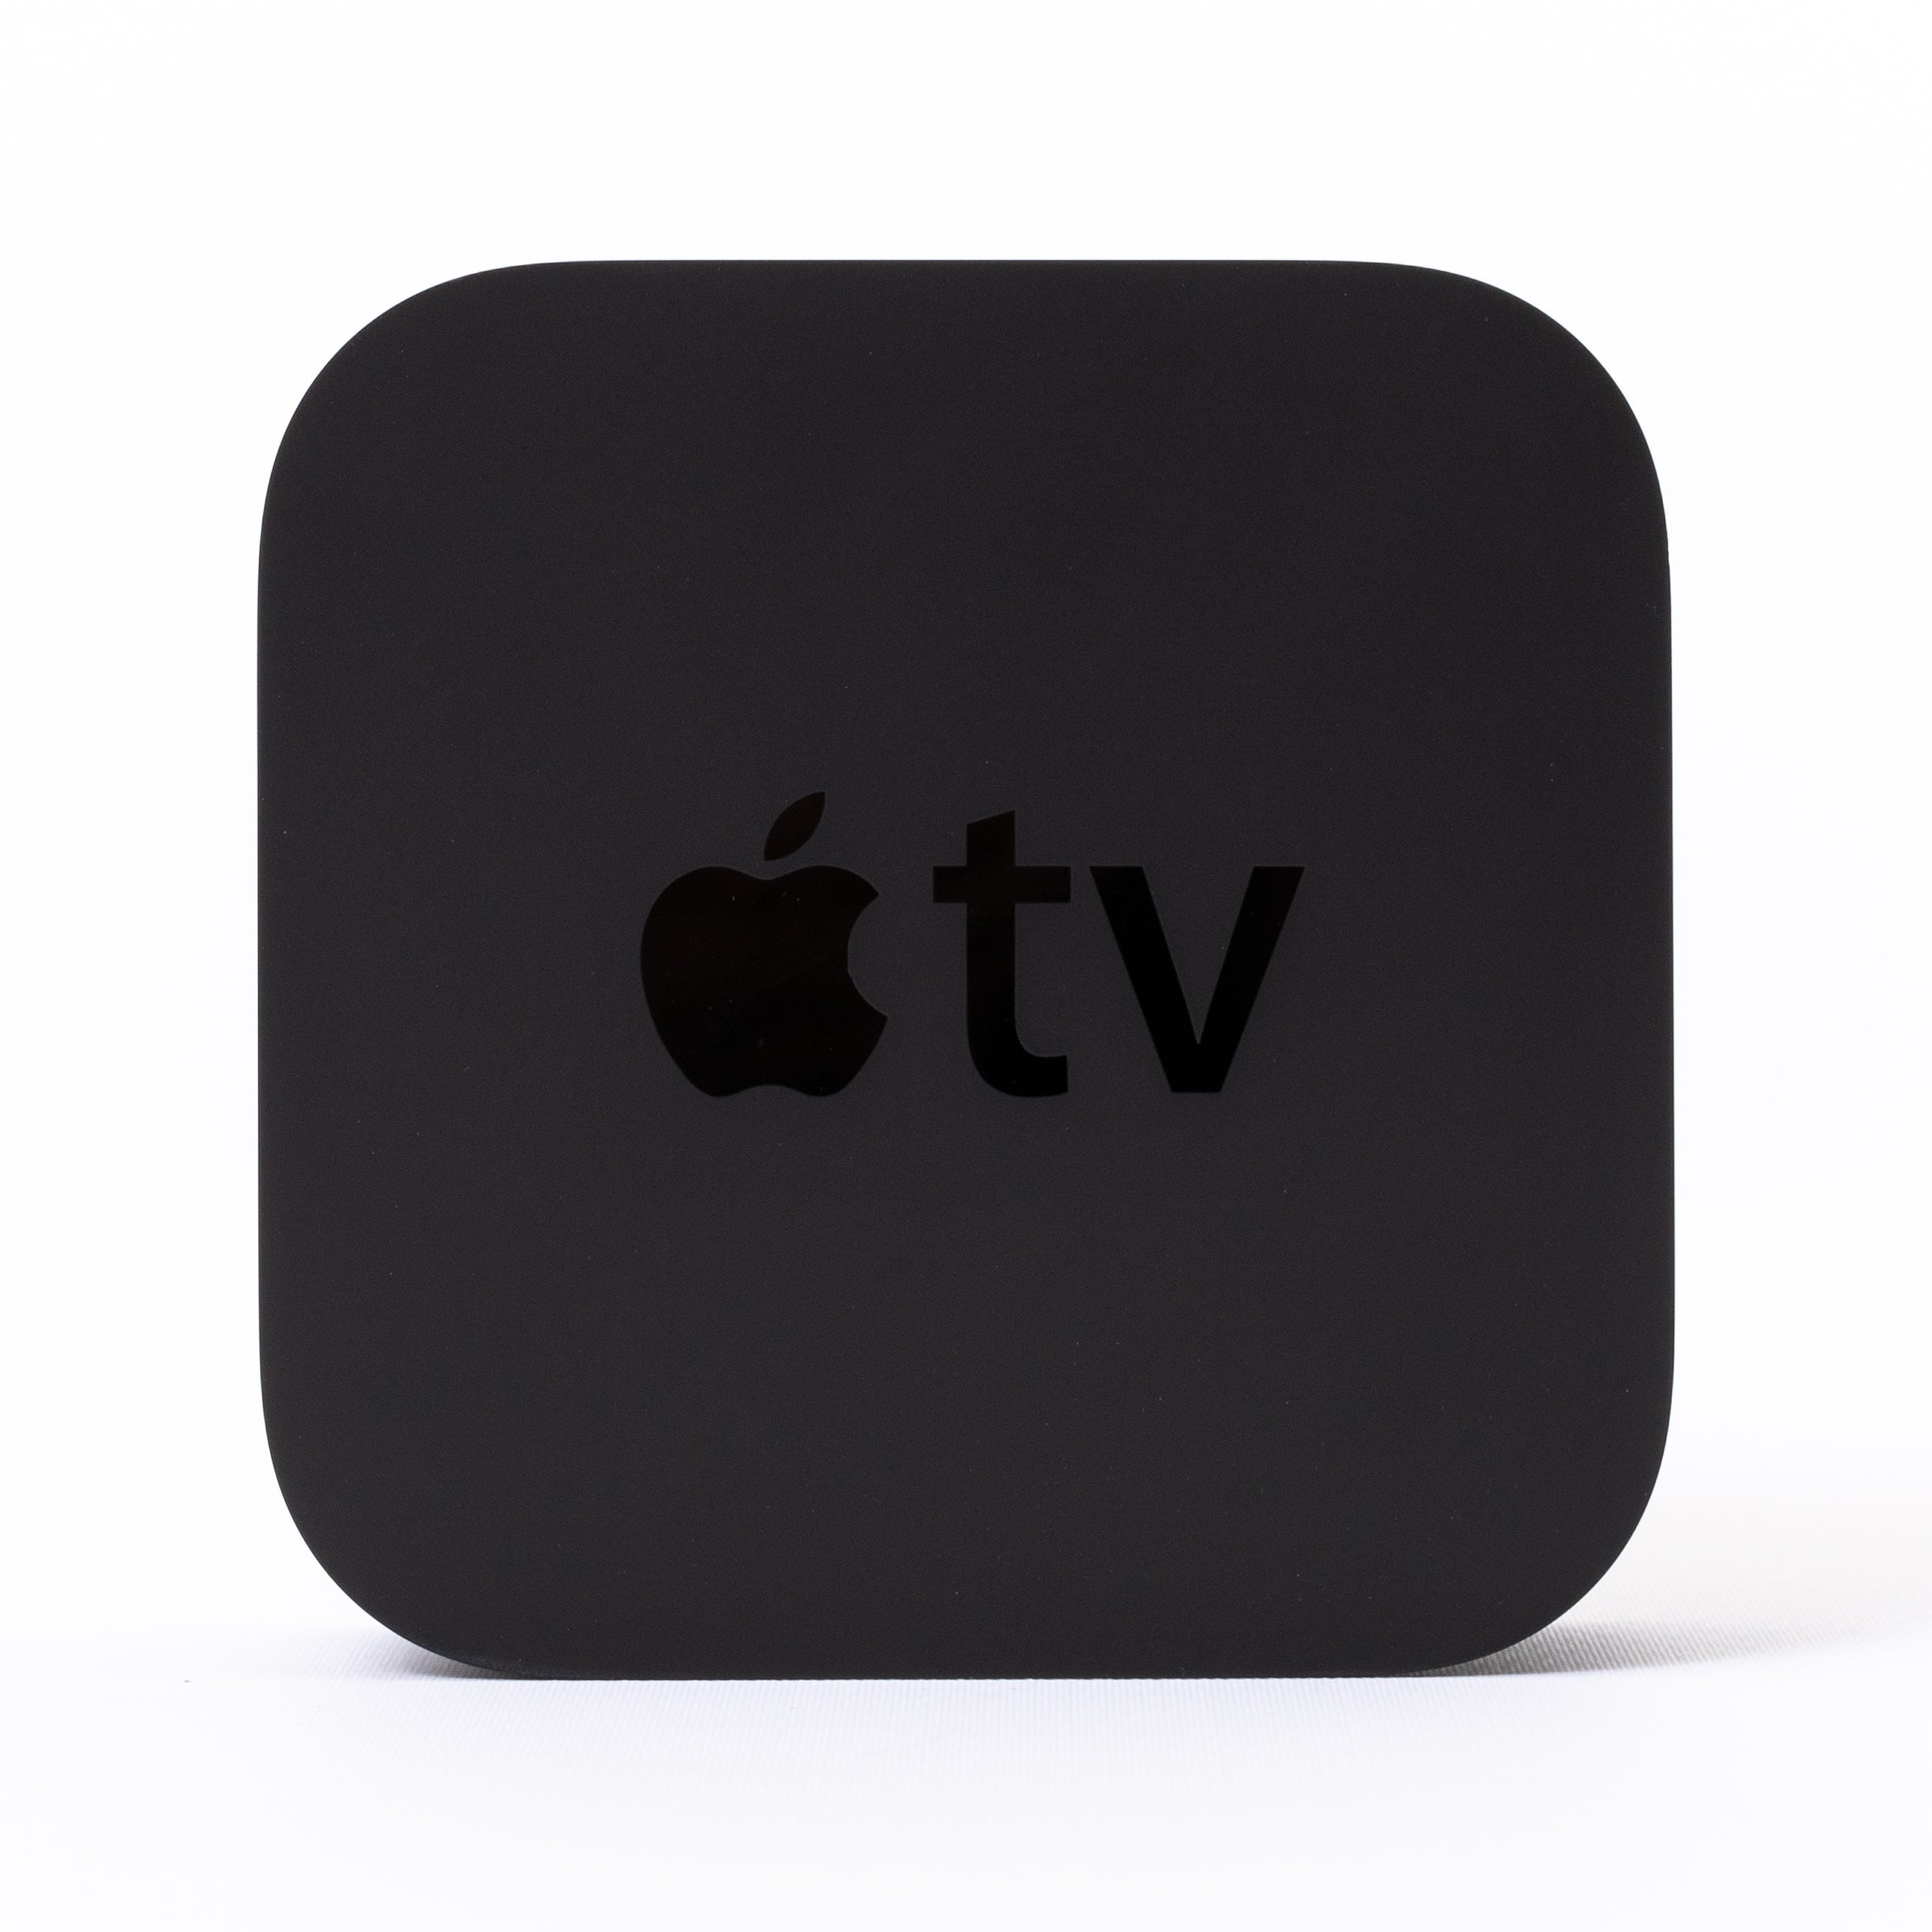 Apple TV 3rd Generation - Refurbished by Overstock